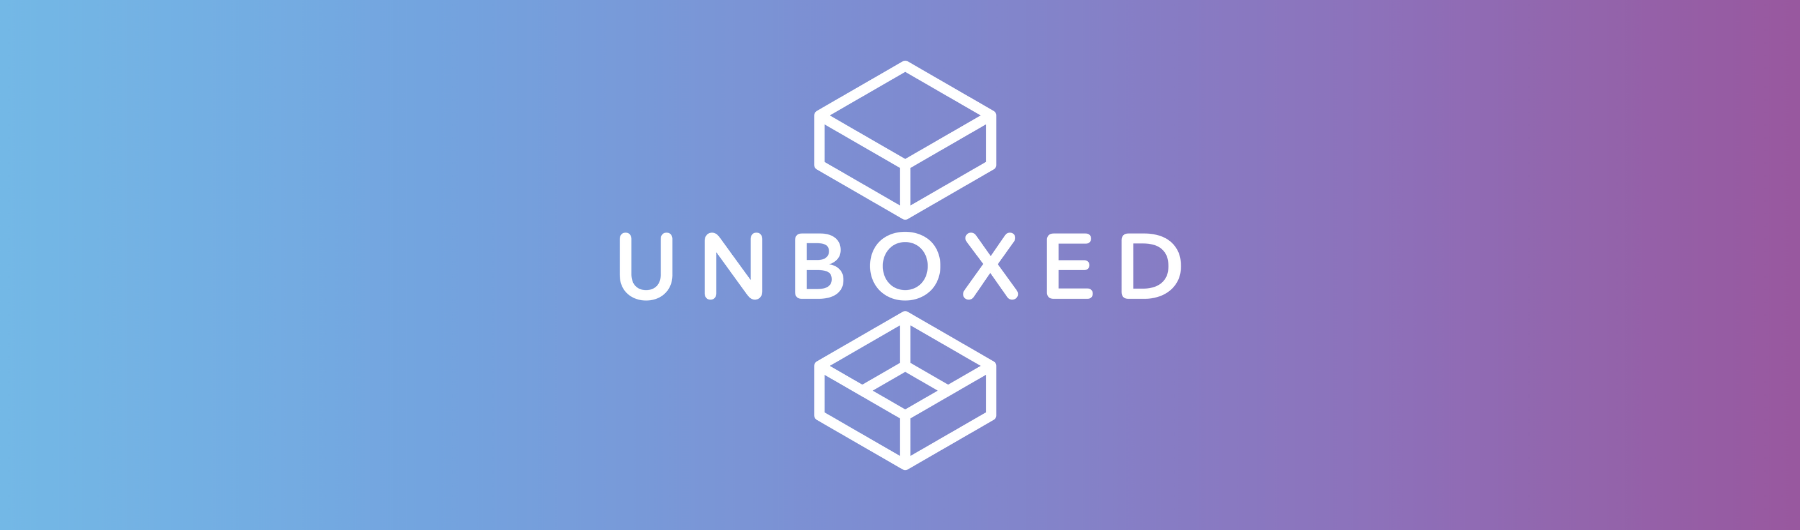 Unboxed 2019 | Oxford's Digital Marketing Conference